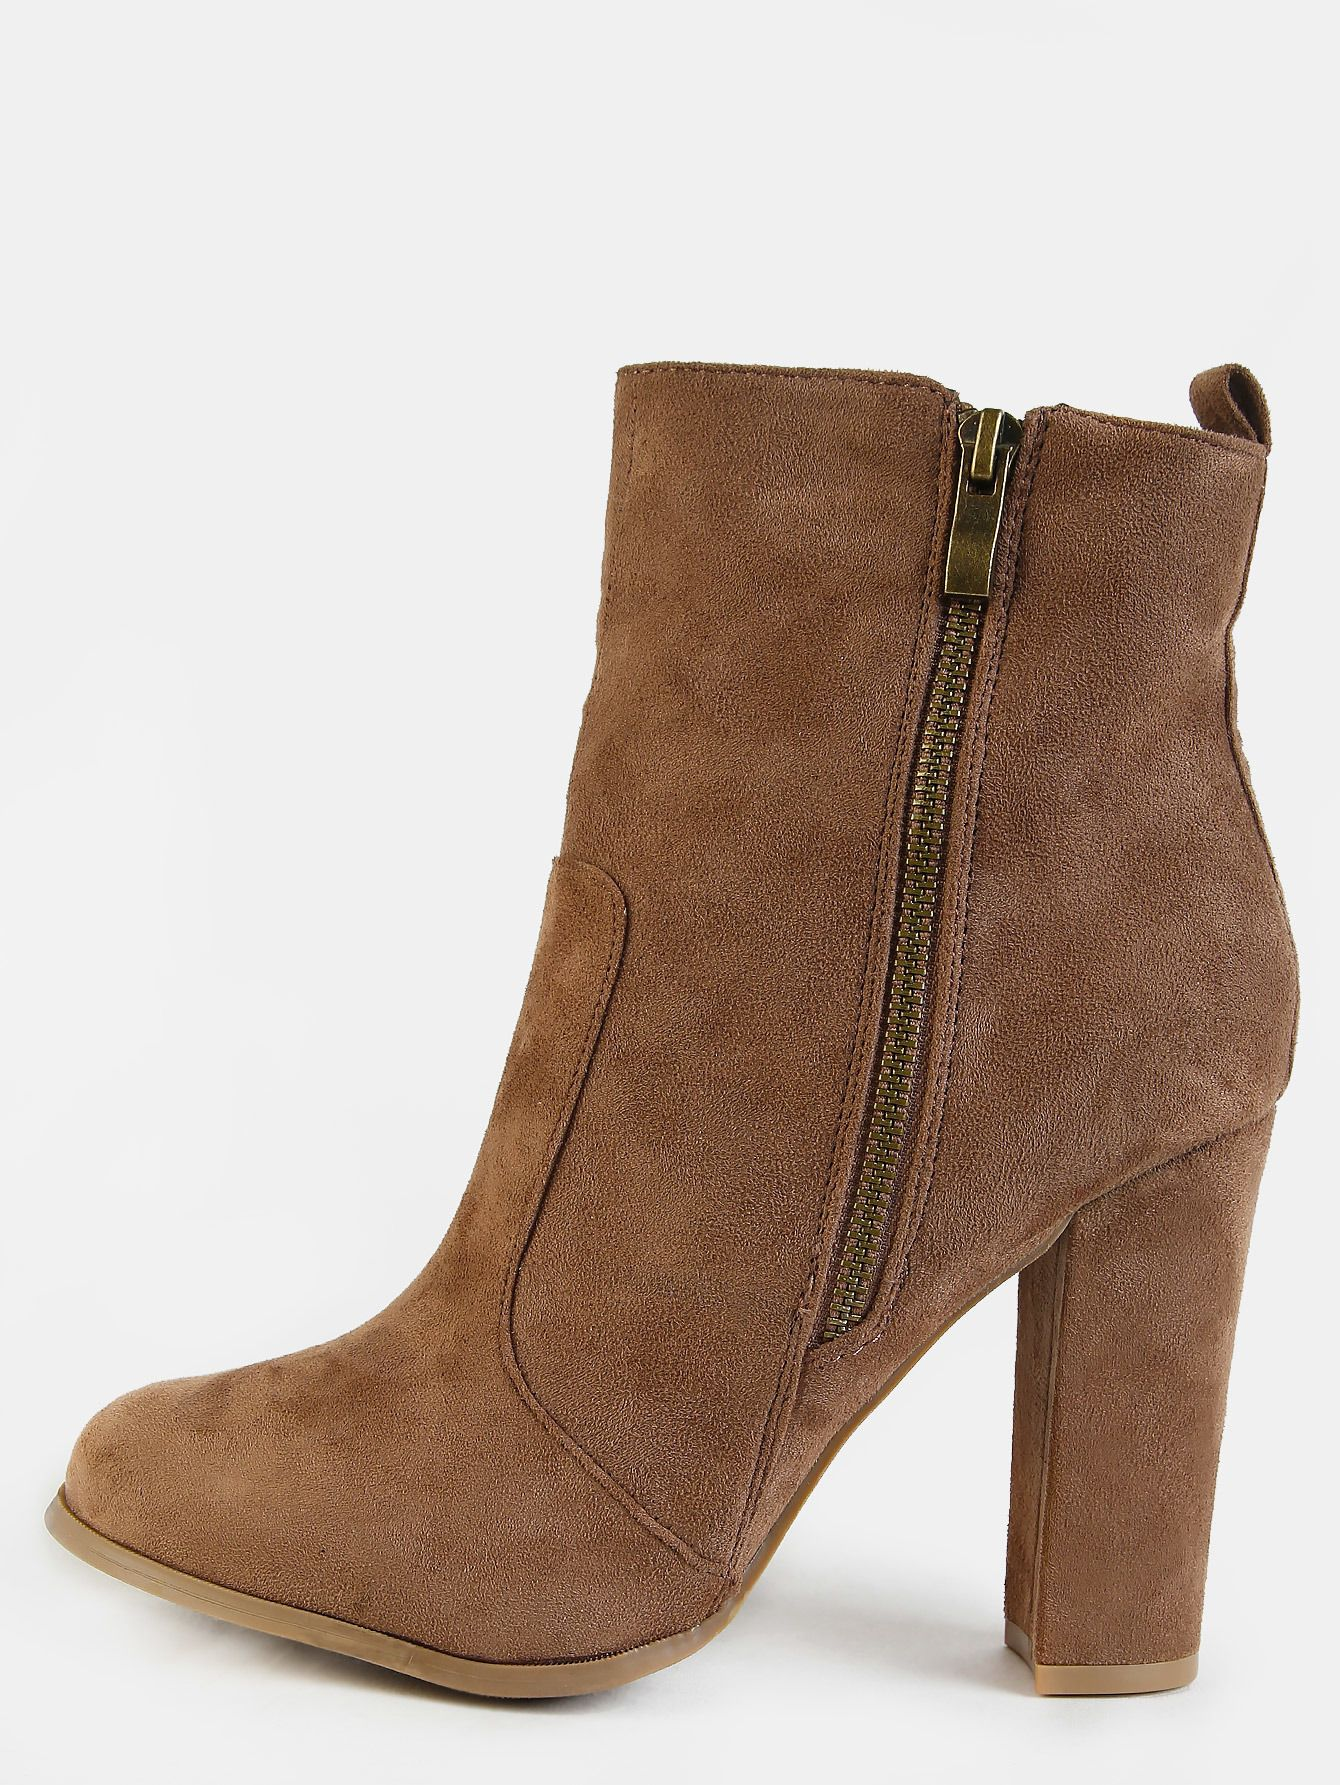 Women's Fashion Zipper Faux Suede Chunky High Heel Ankle Boots